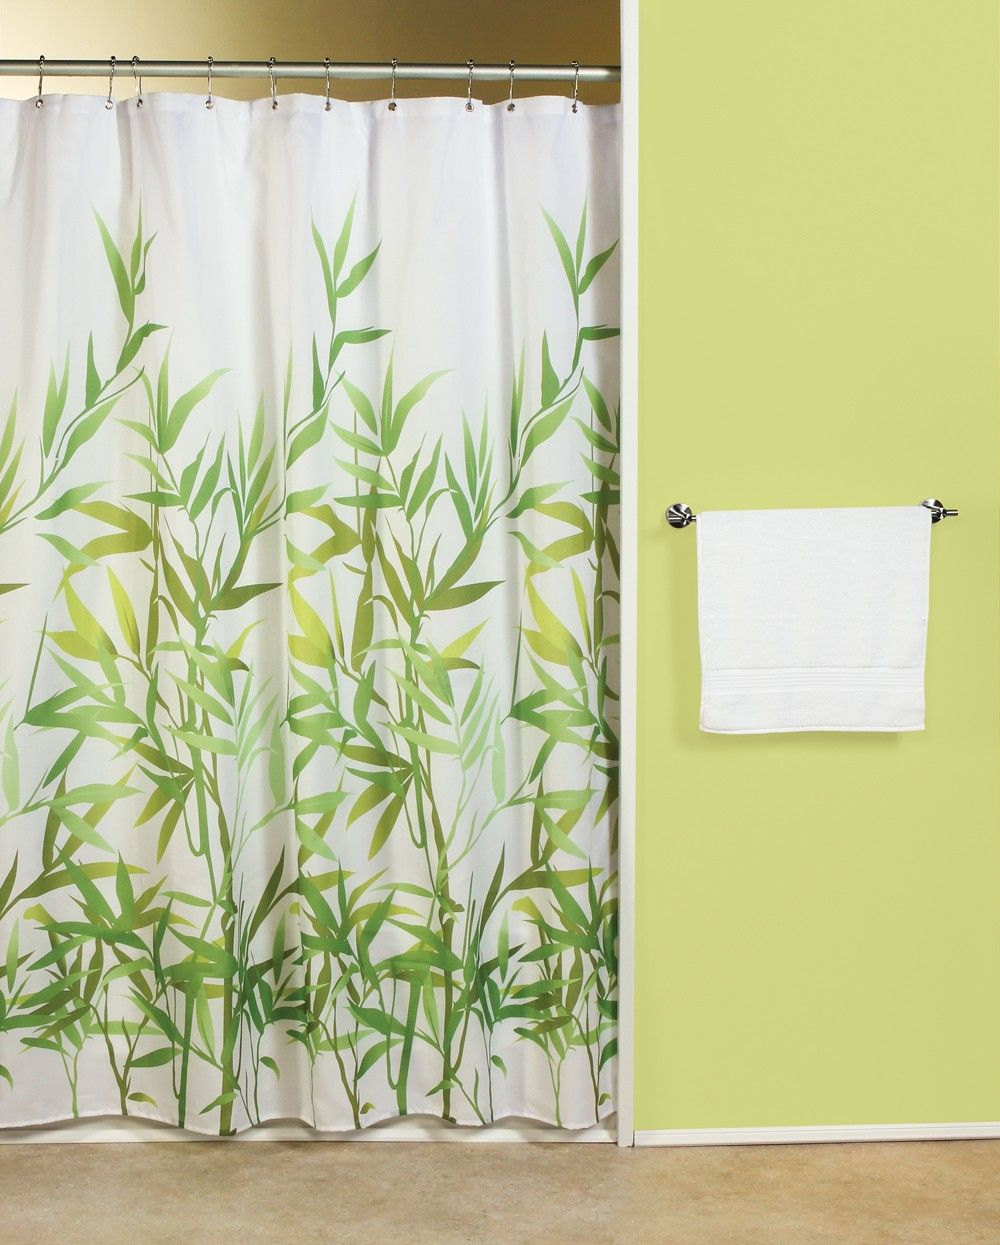 Green Bamboo Shower Curtain Http Www Grandprixafterparty Com